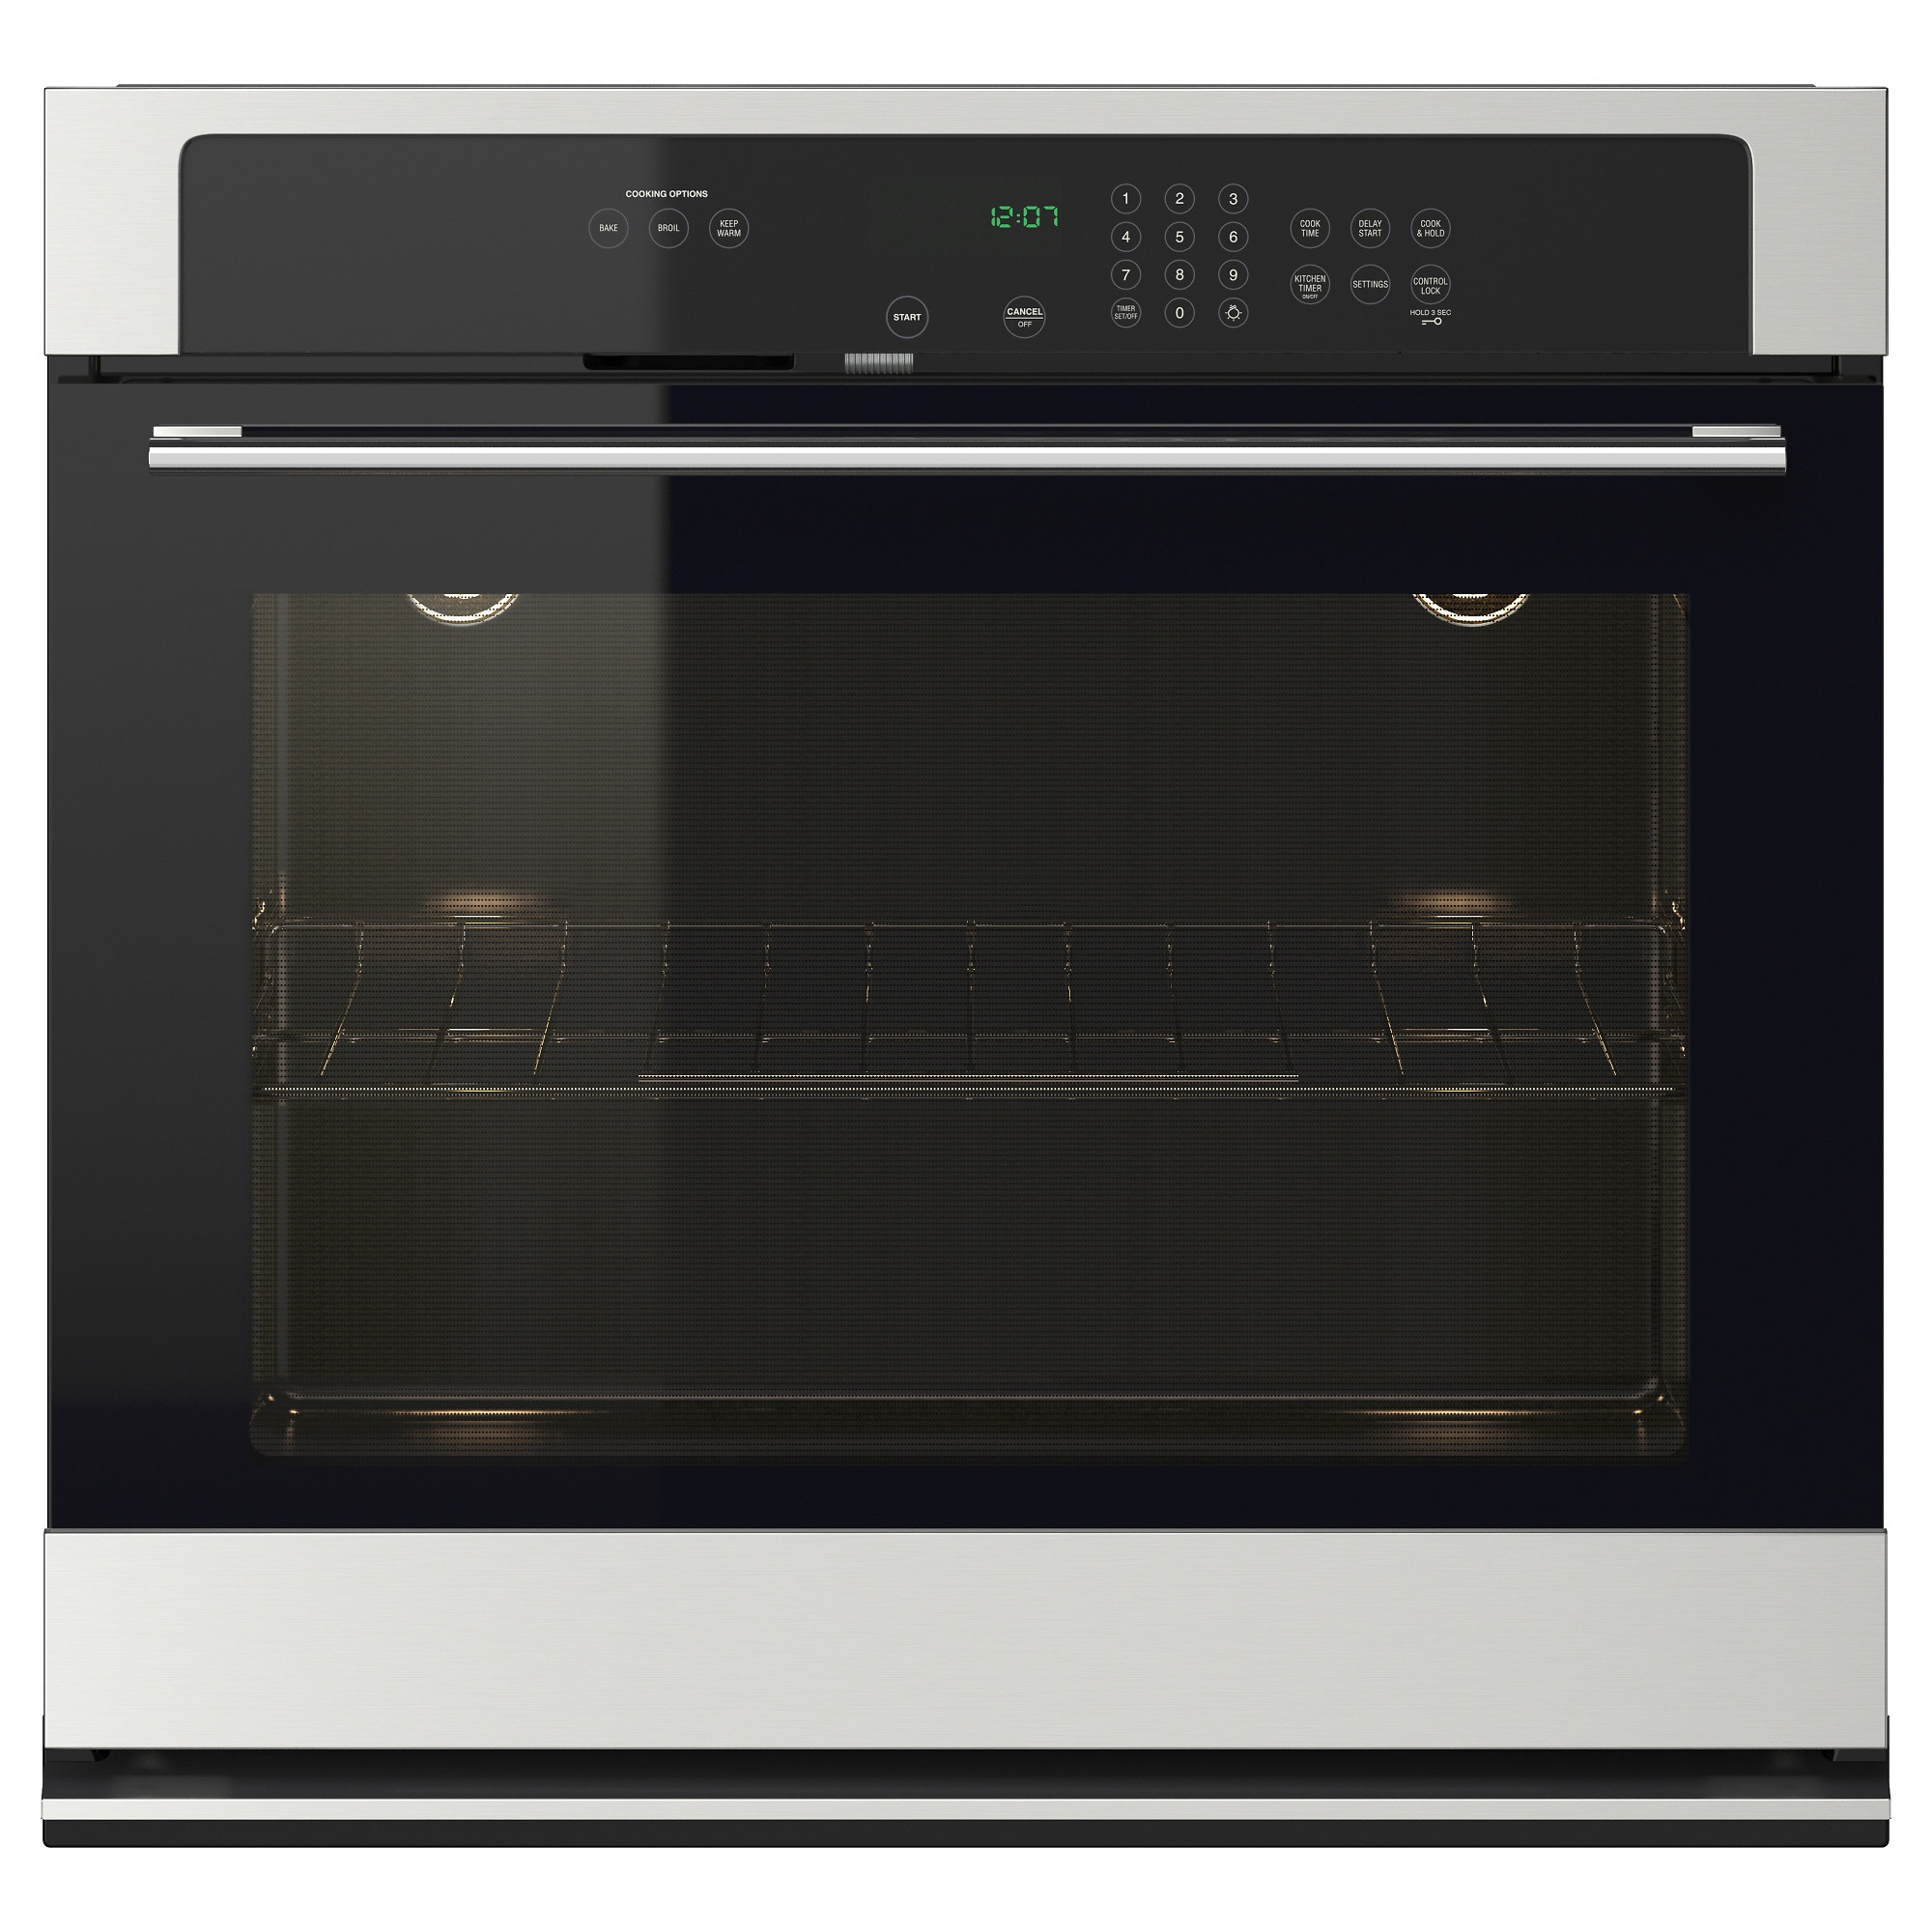 Side by side double oven cost - Nutid Thermal Oven Stainless Steel Width 30 Depth 26 3 8